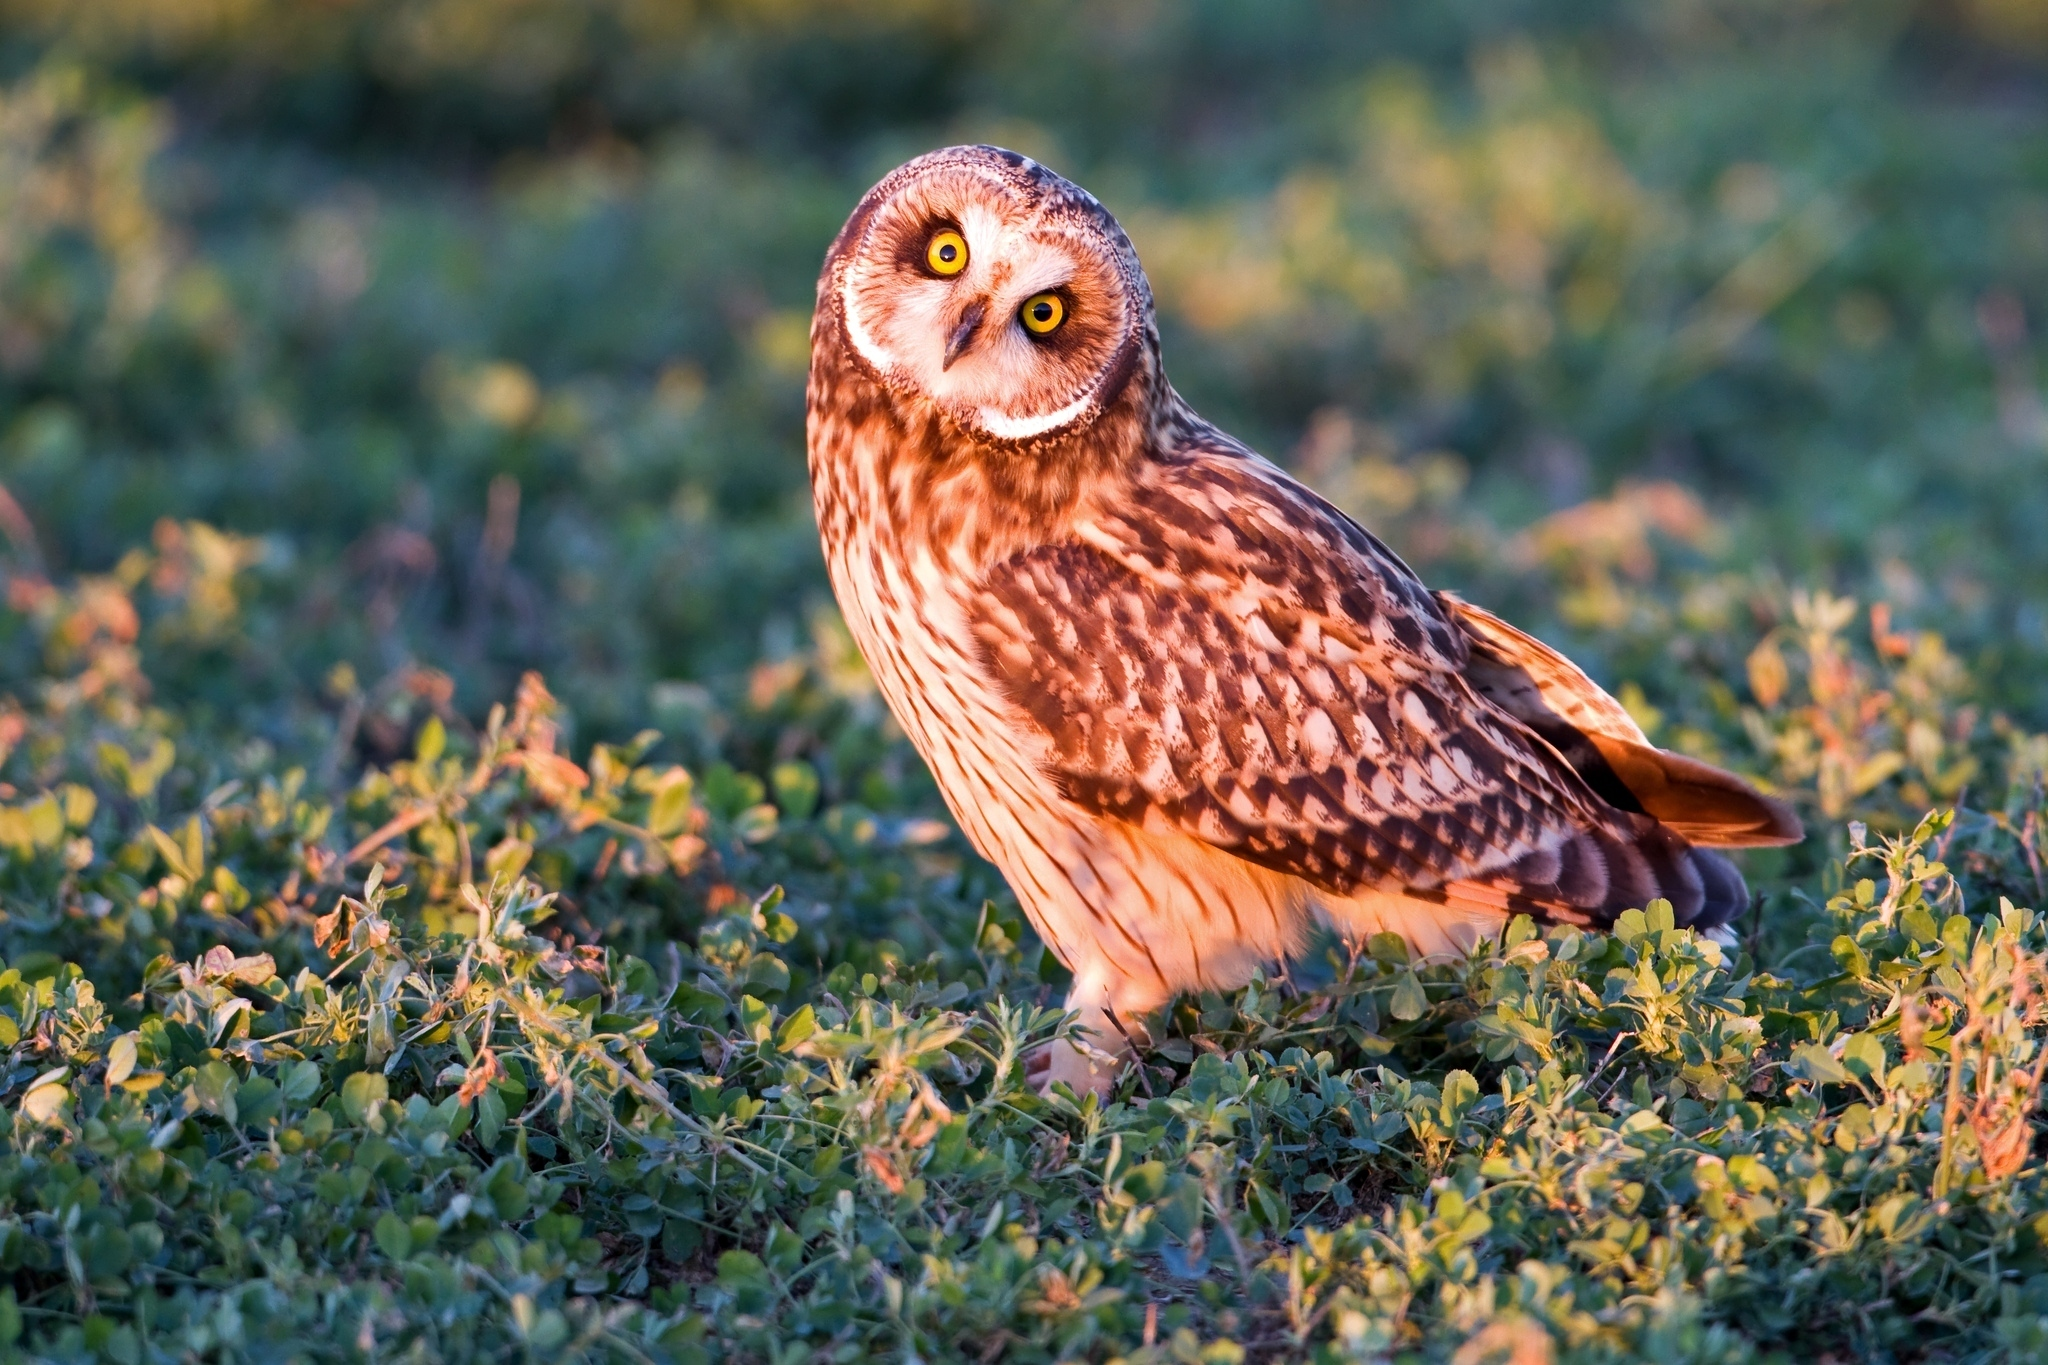 70442 Screensavers and Wallpapers Owl for phone. Download Animals, Owl, Bird, Grass, Predator, Sight, Opinion pictures for free